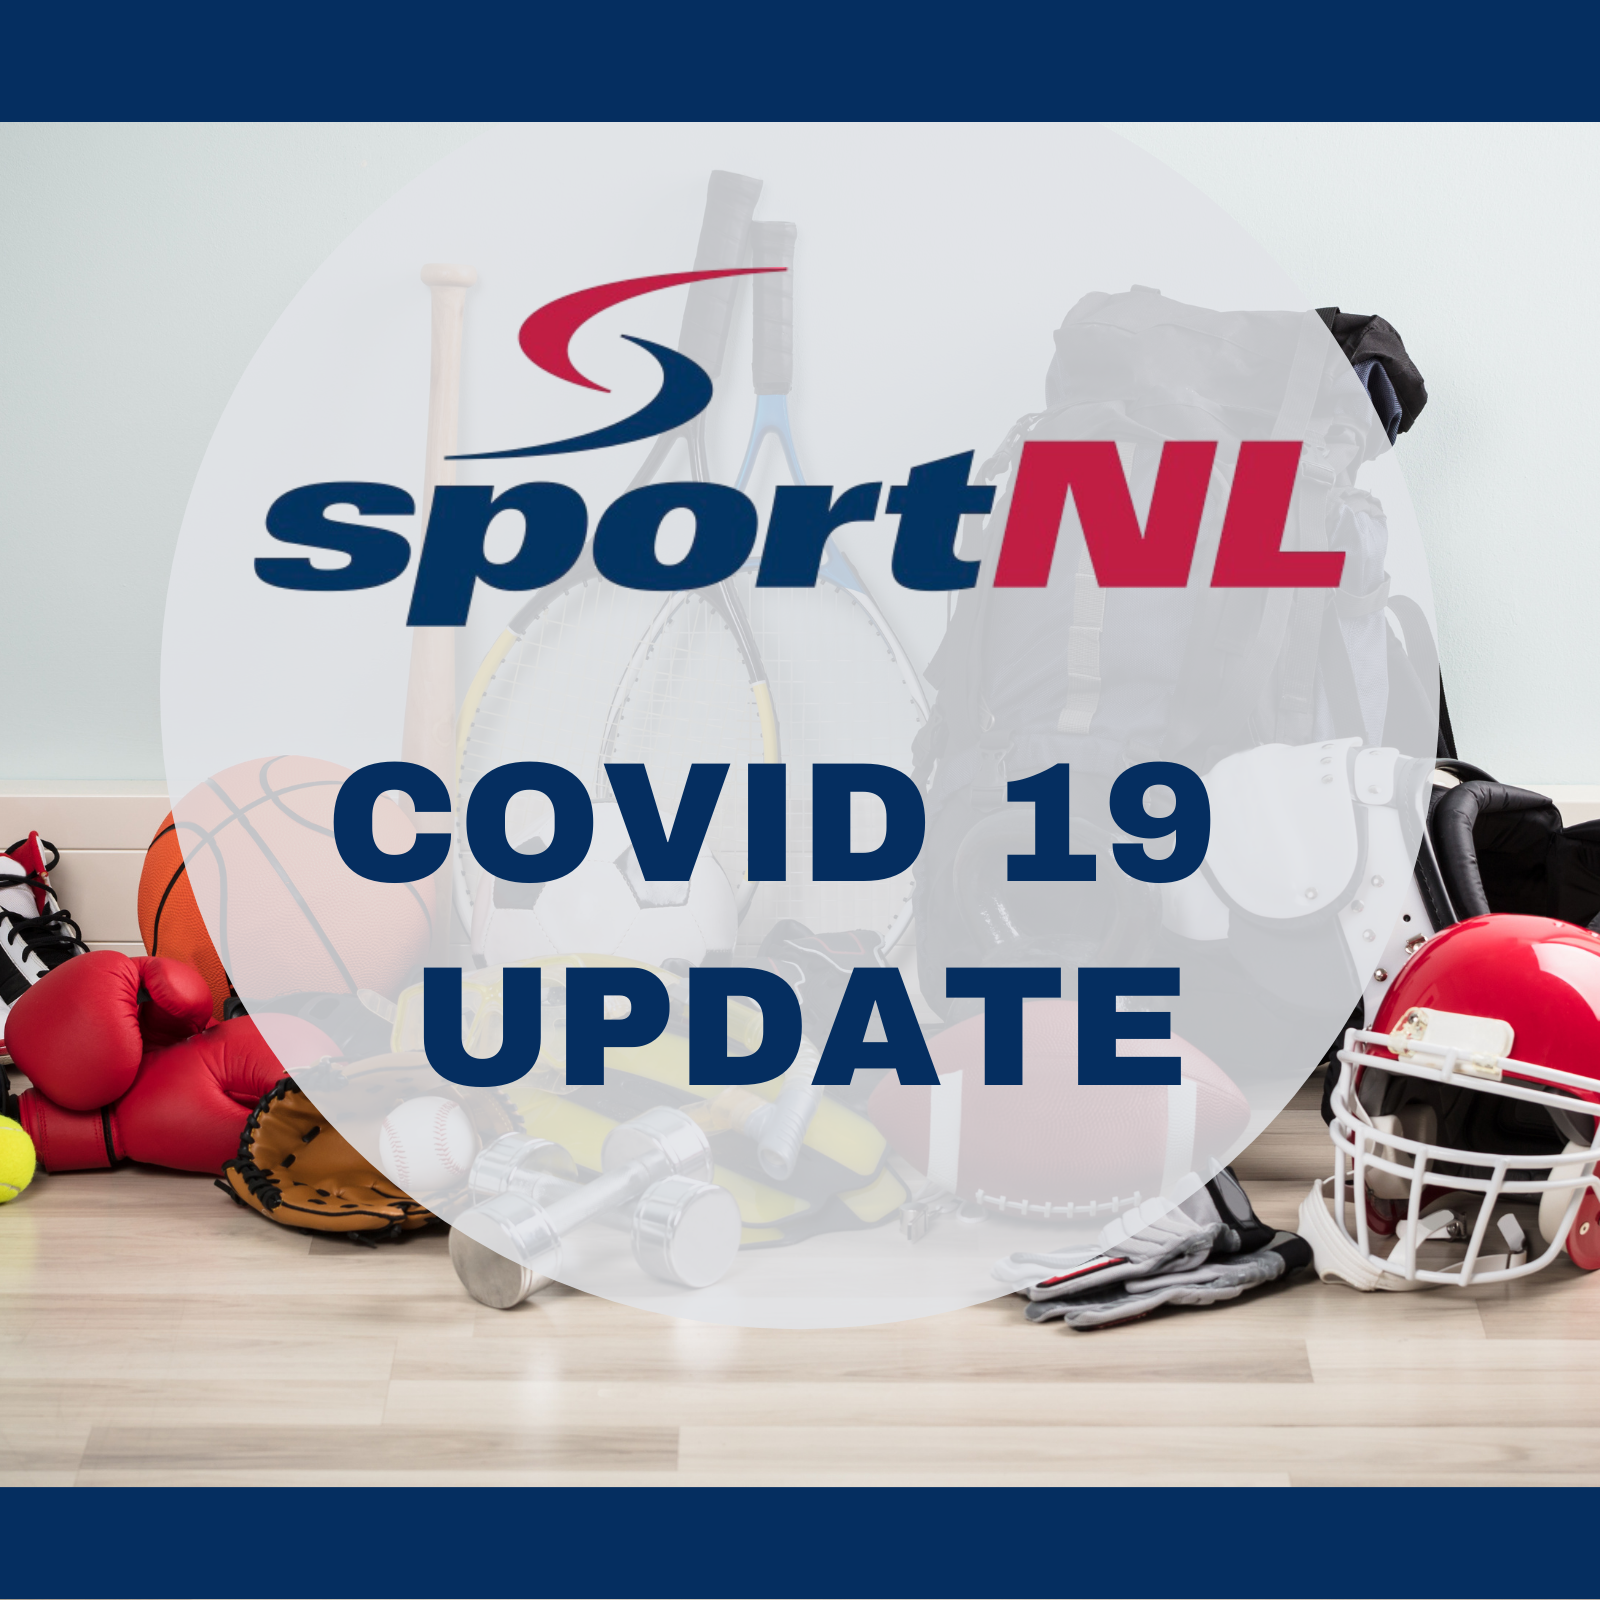 Minister Davis Announces COVID-19 Emergency Support Fund for Sport